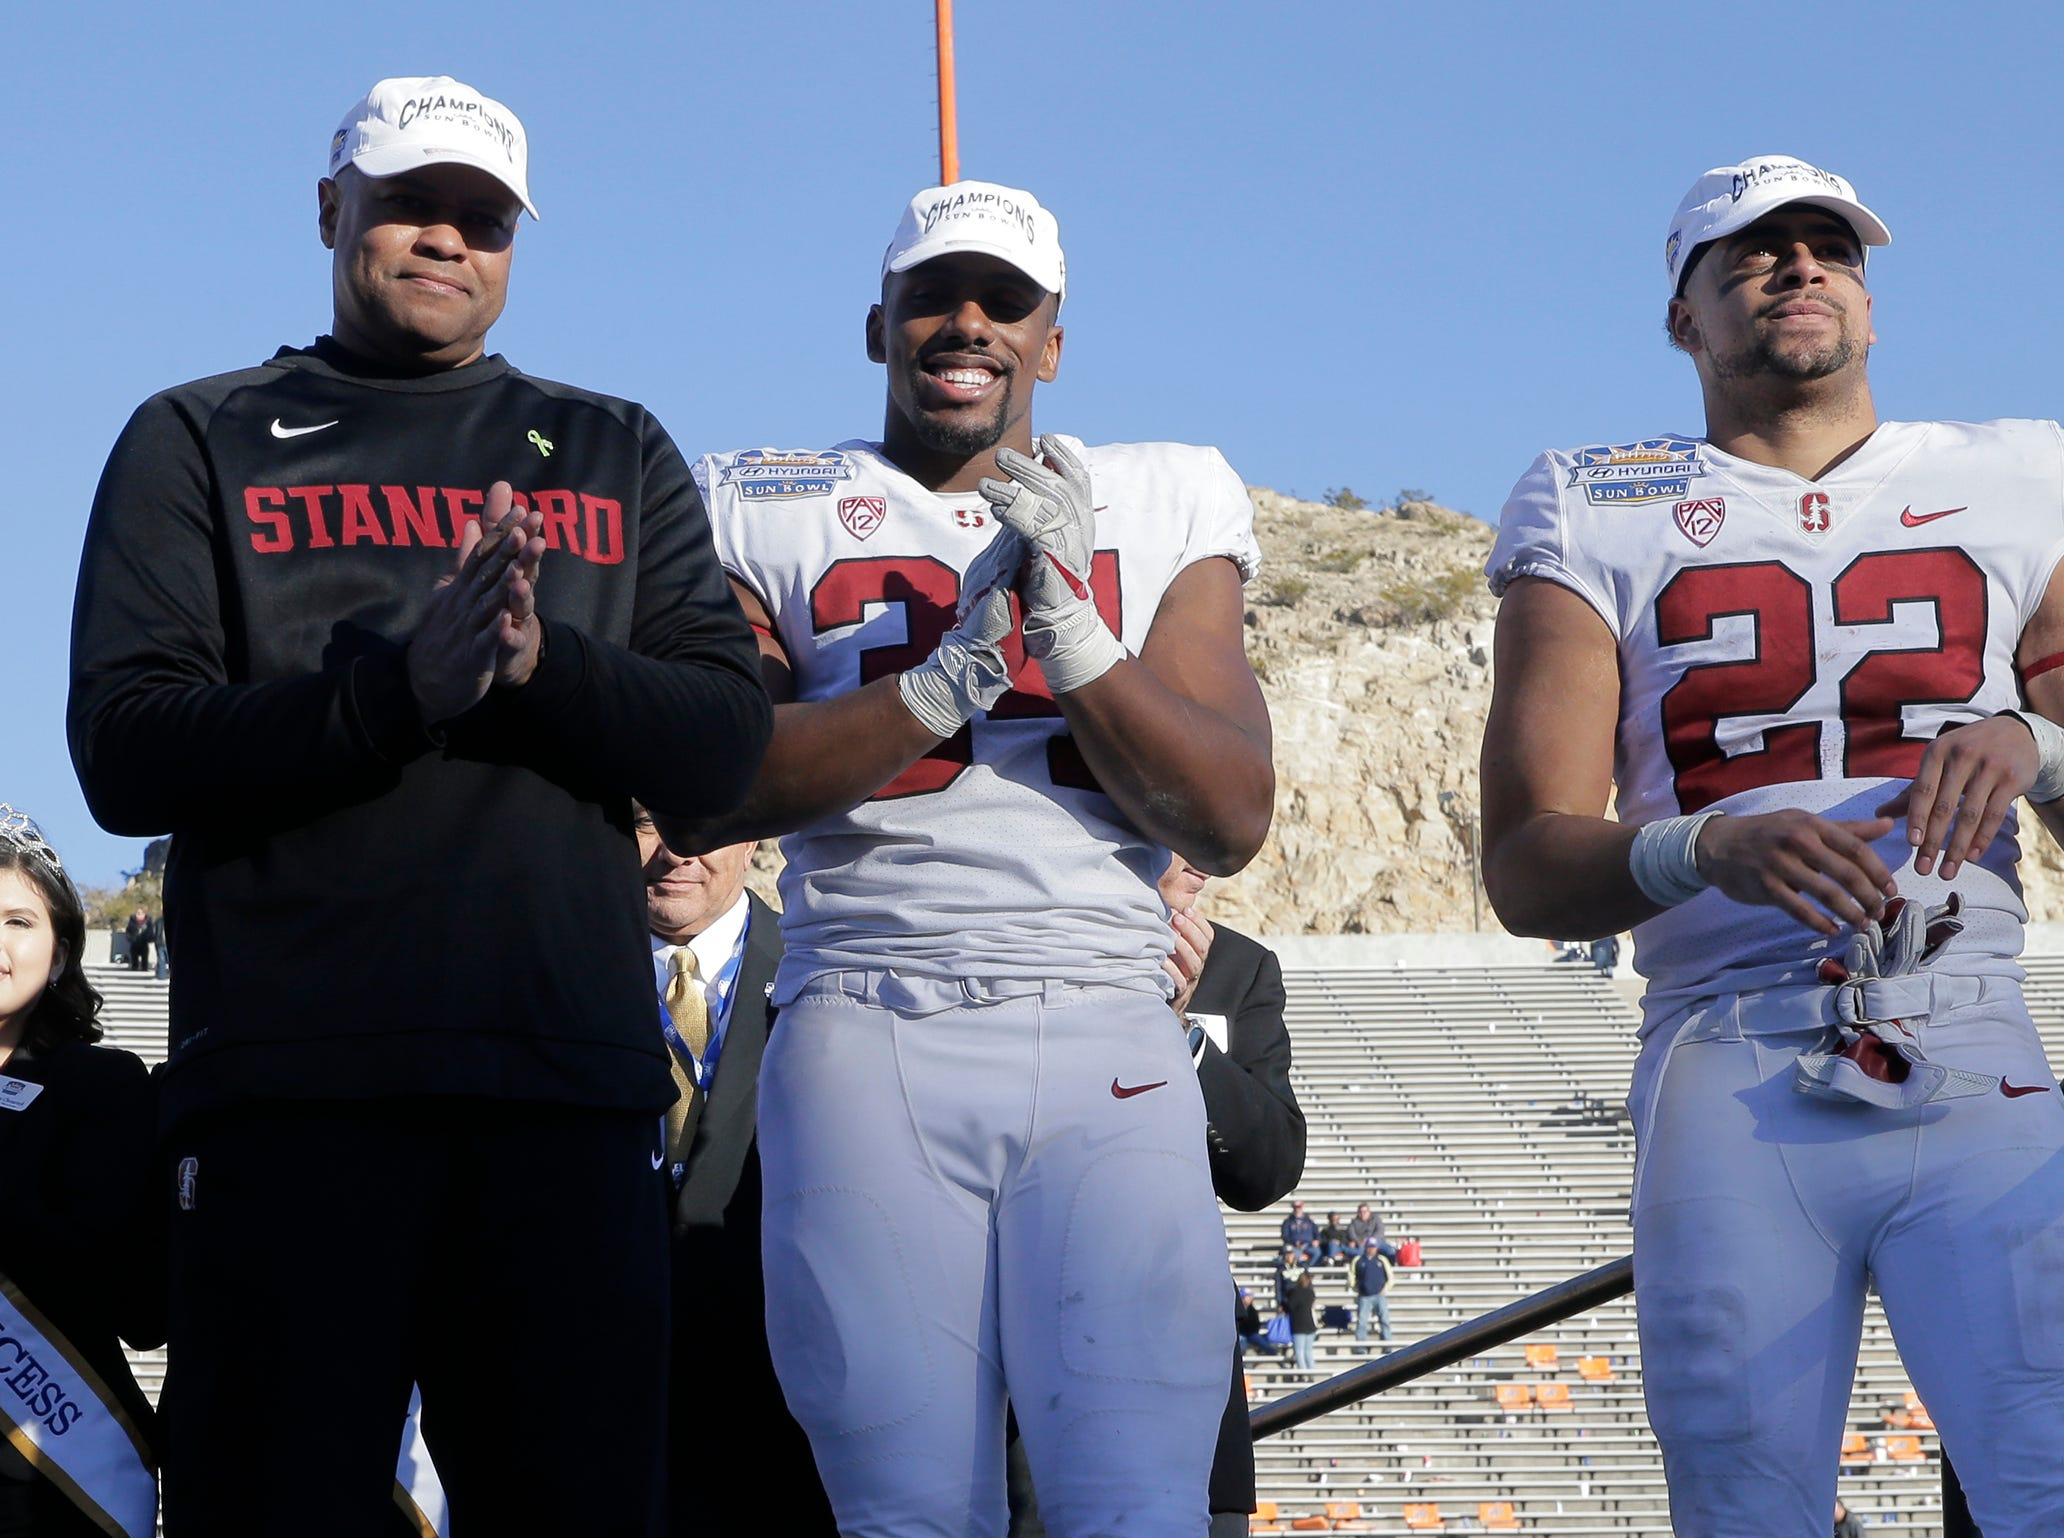 Head coach David Shaw and Thomas Booker and Cameron Scarlett both members of the Stanford football team wait for the presentation of the 85th Hyundai Sun Bowl Championship trophy after defeating the Pitt Panthers 14-13.